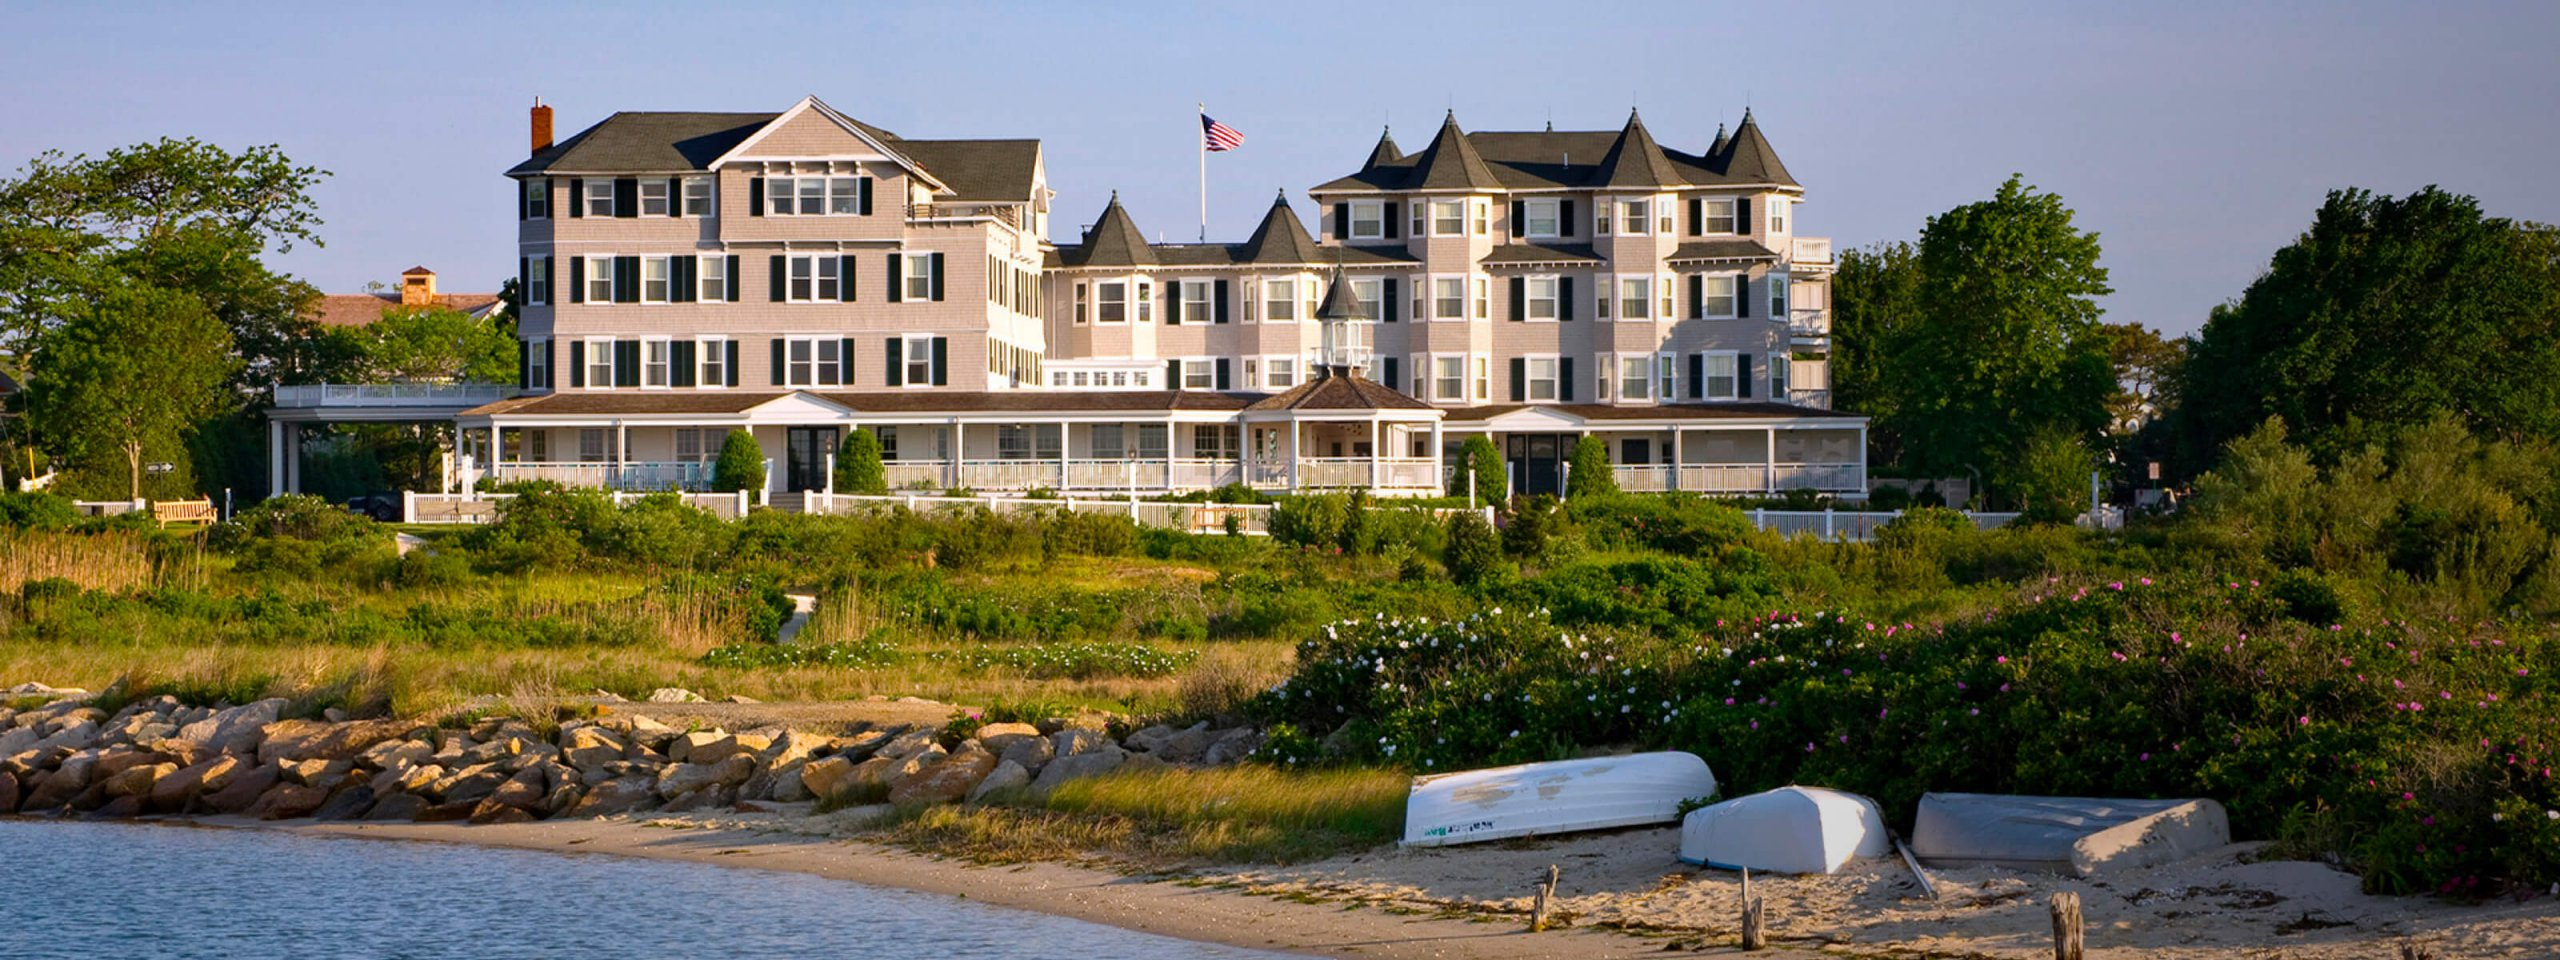 YachtLife's Suggested 7-day Itinerary - Martha's Vineyard